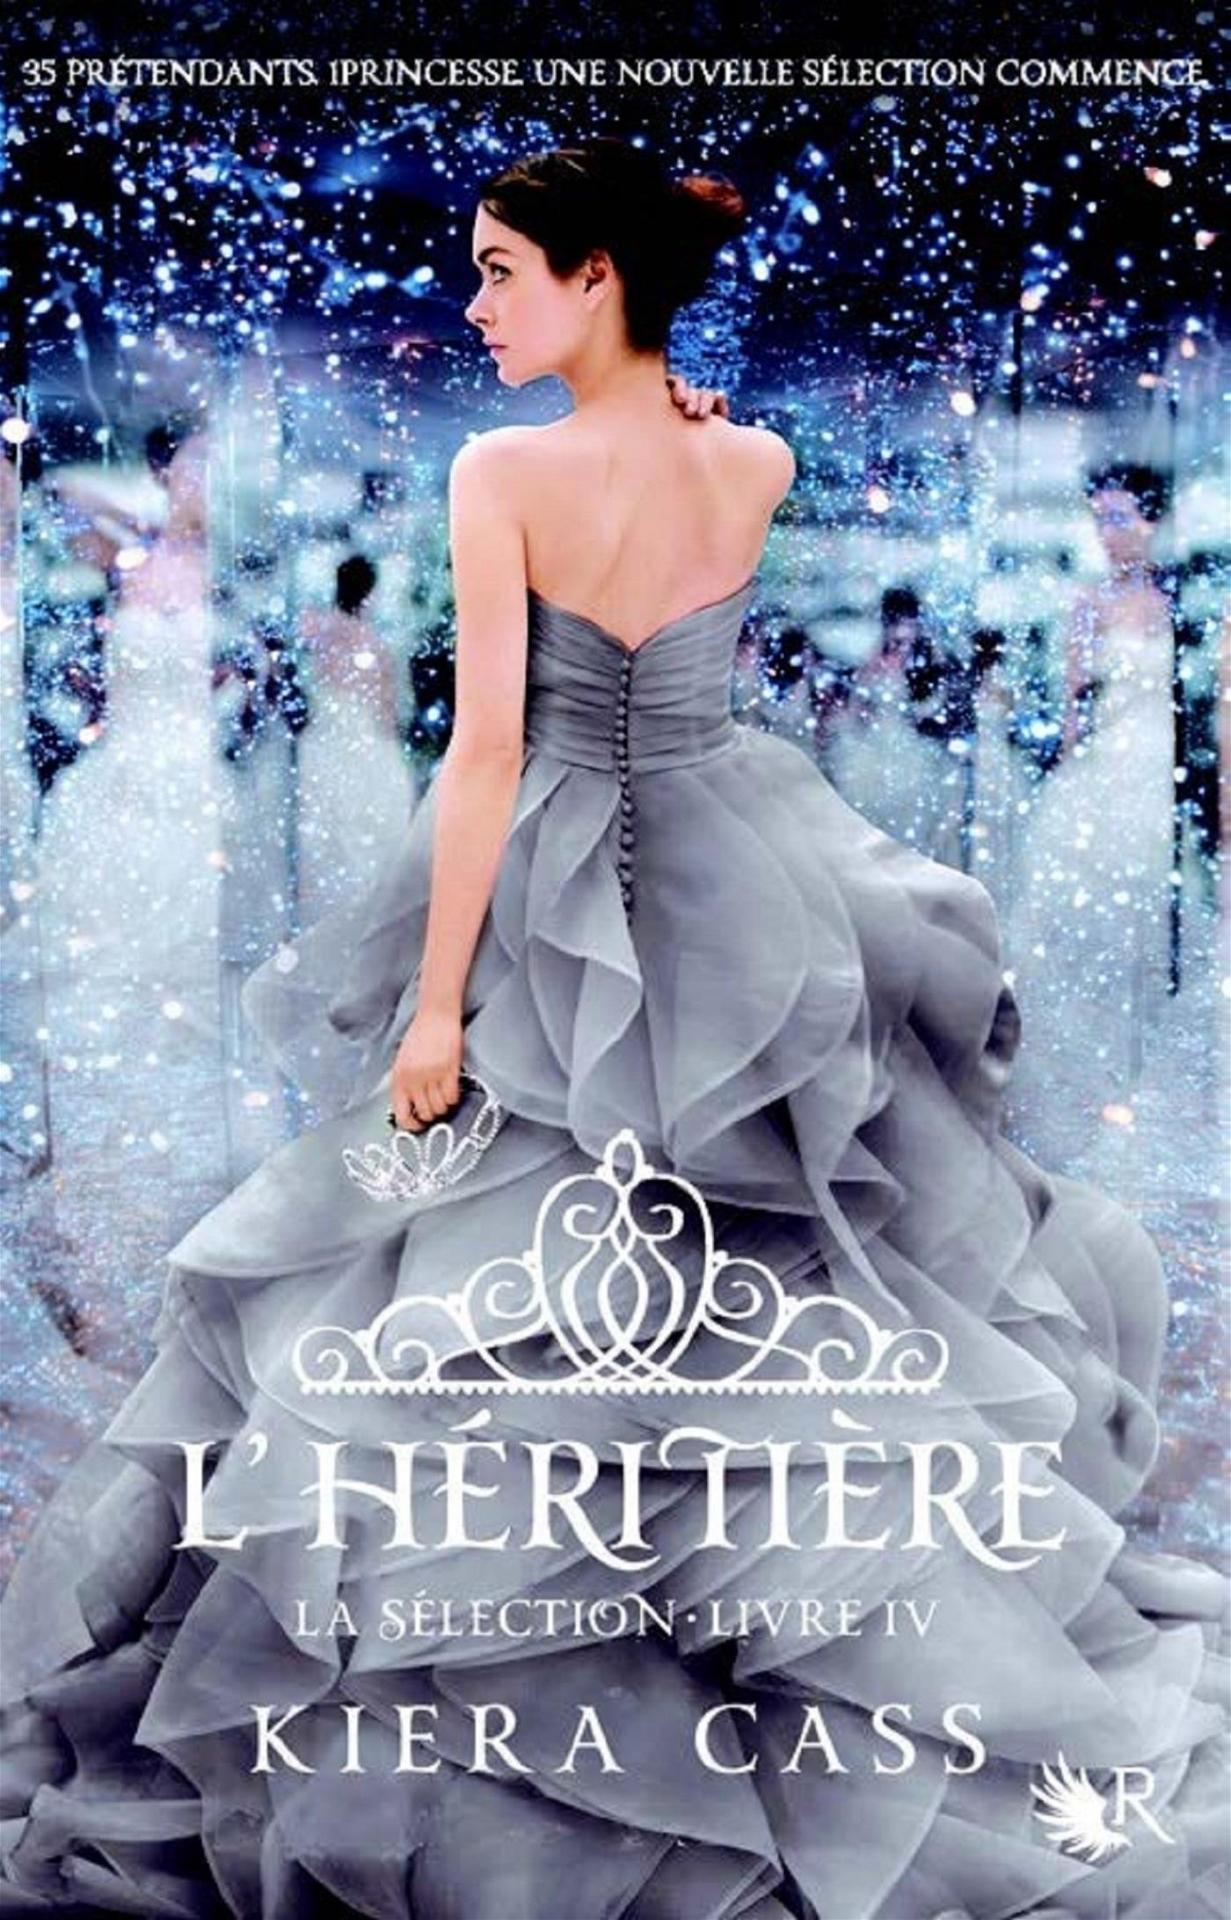 La selection tome 4 l heritiere